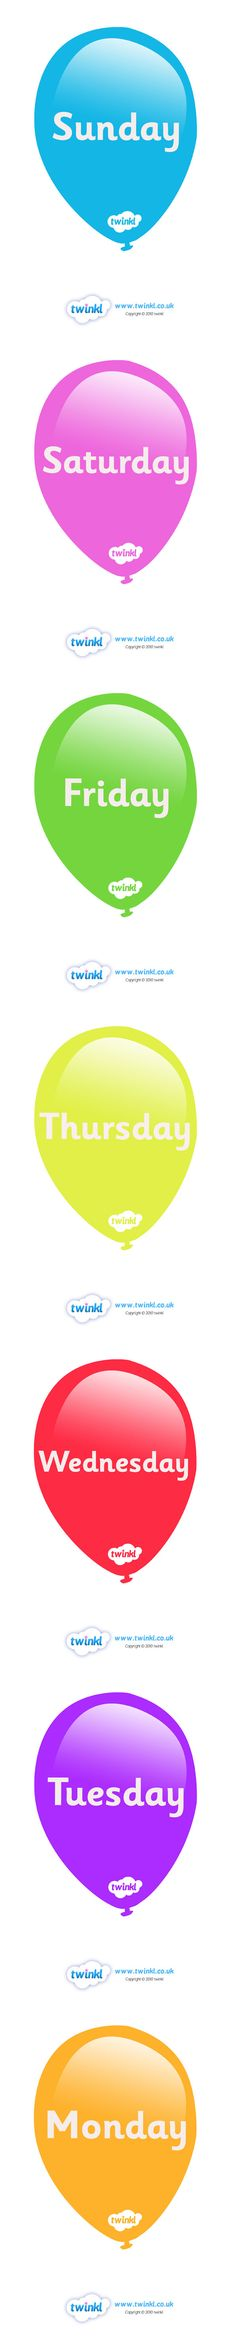 Twinkl Resources >> Days Of The Week On Balloons  >> Thousands of printable primary teaching resources for EYFS, KS1, KS2 and beyond! weeks poster, display, poster, days of the week,